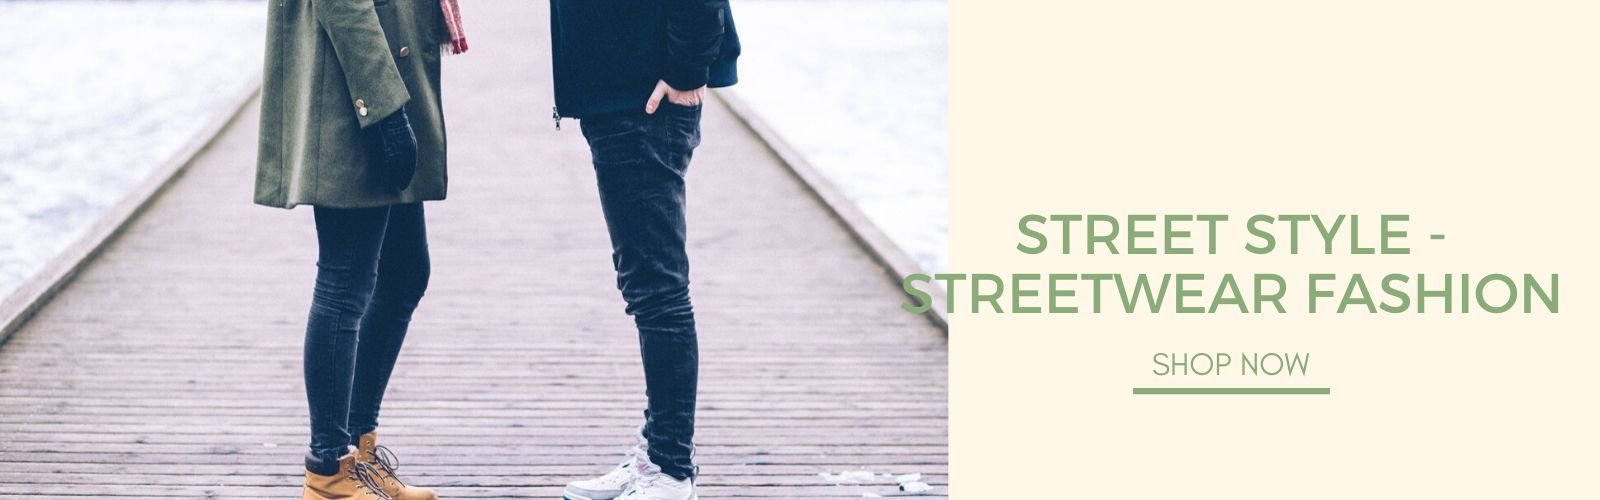 Street Style - Streetwear Fashion AT DELUGESALES.COM